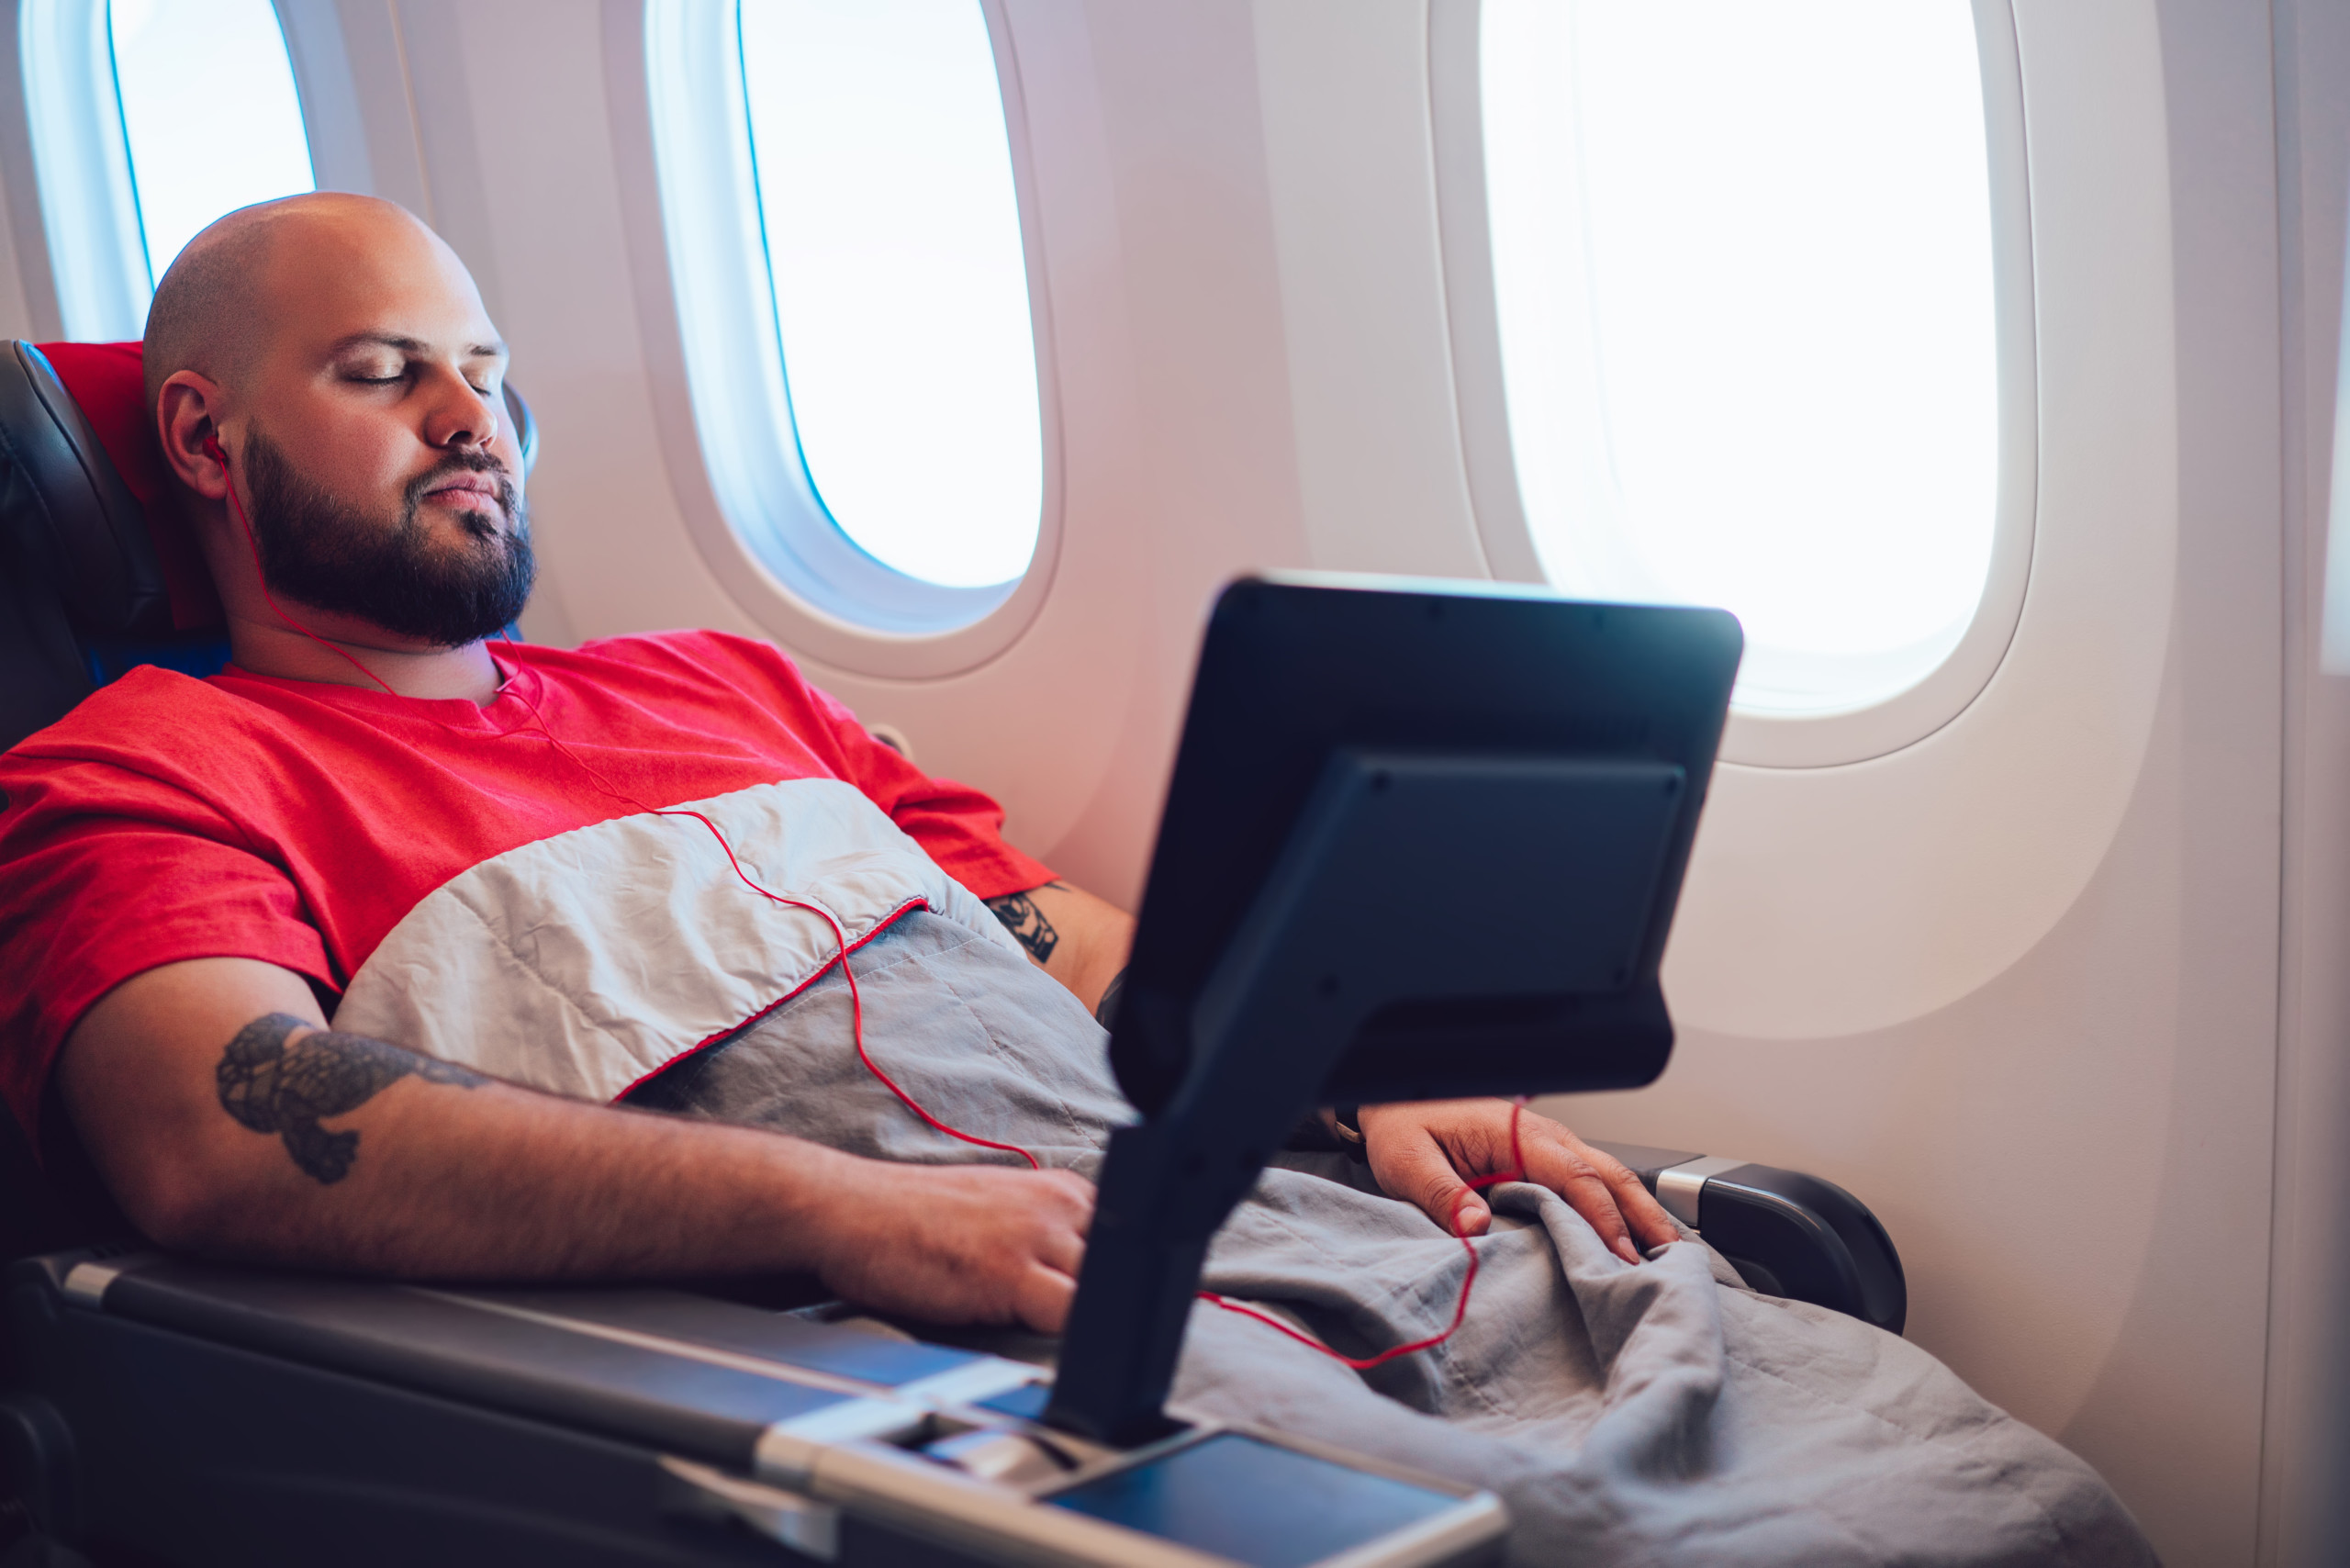 How Personal Electronics Are Changing Inflight Entertainment